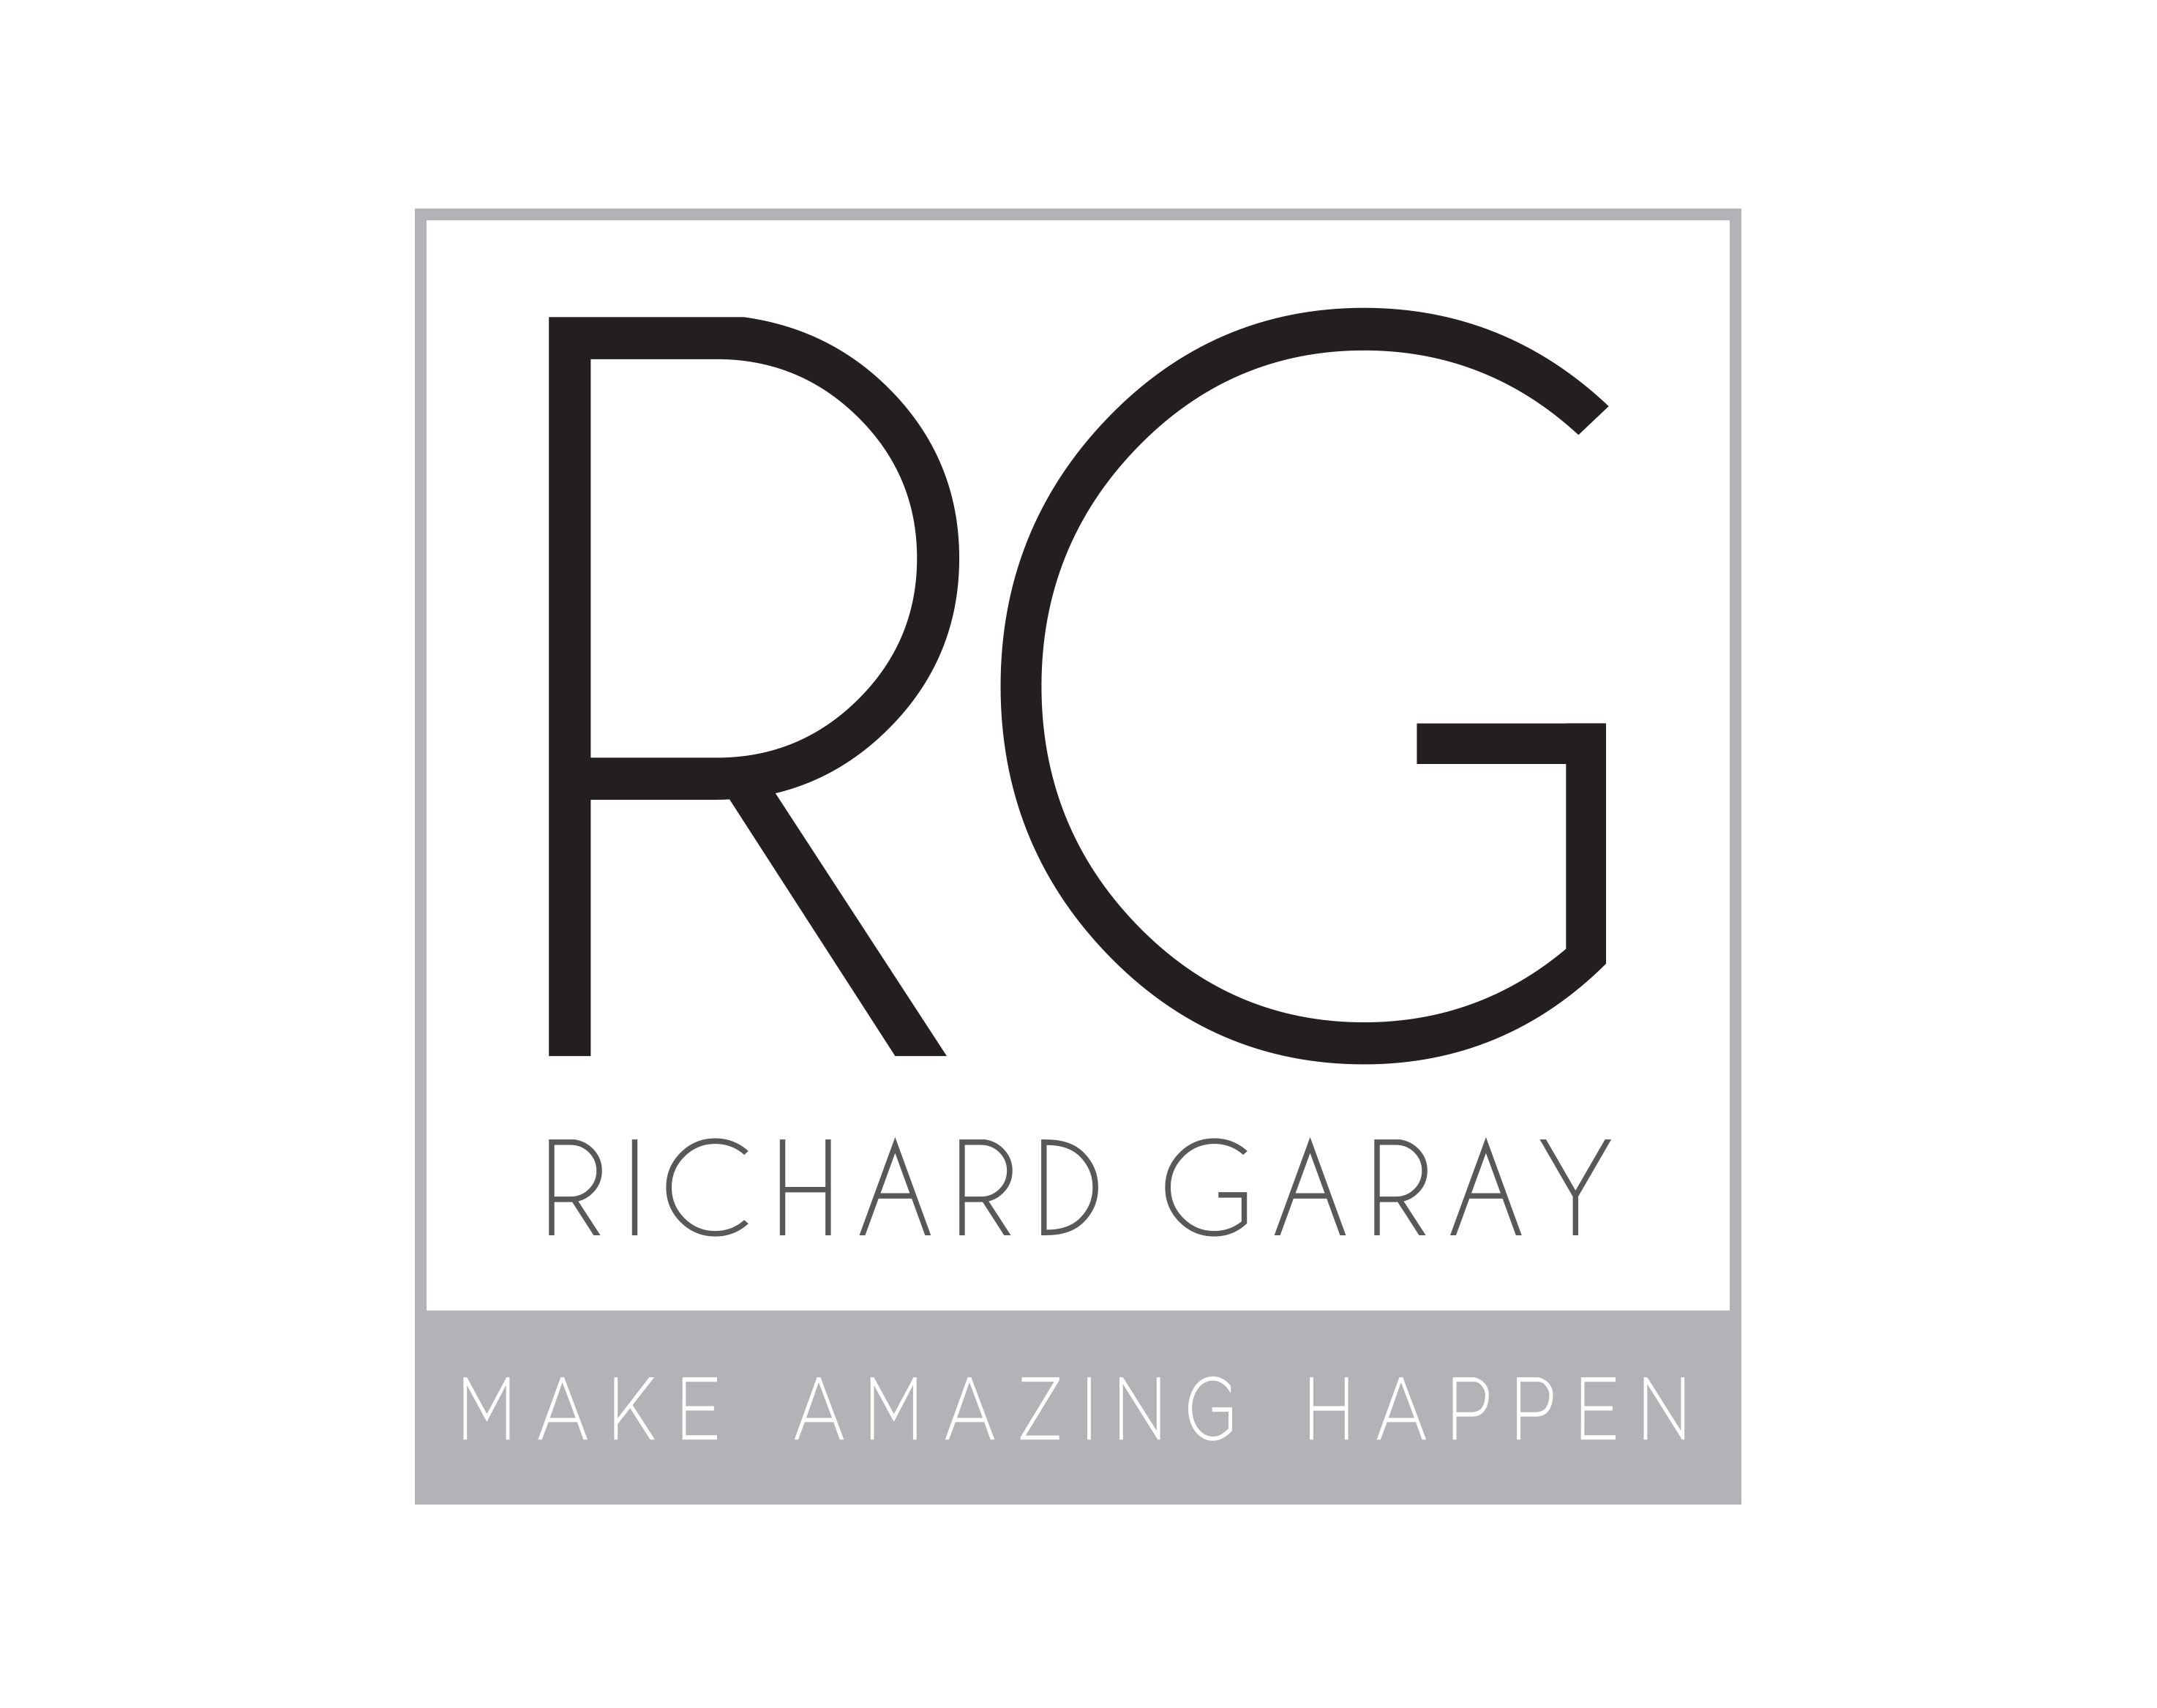 BRAND_Richard Garay